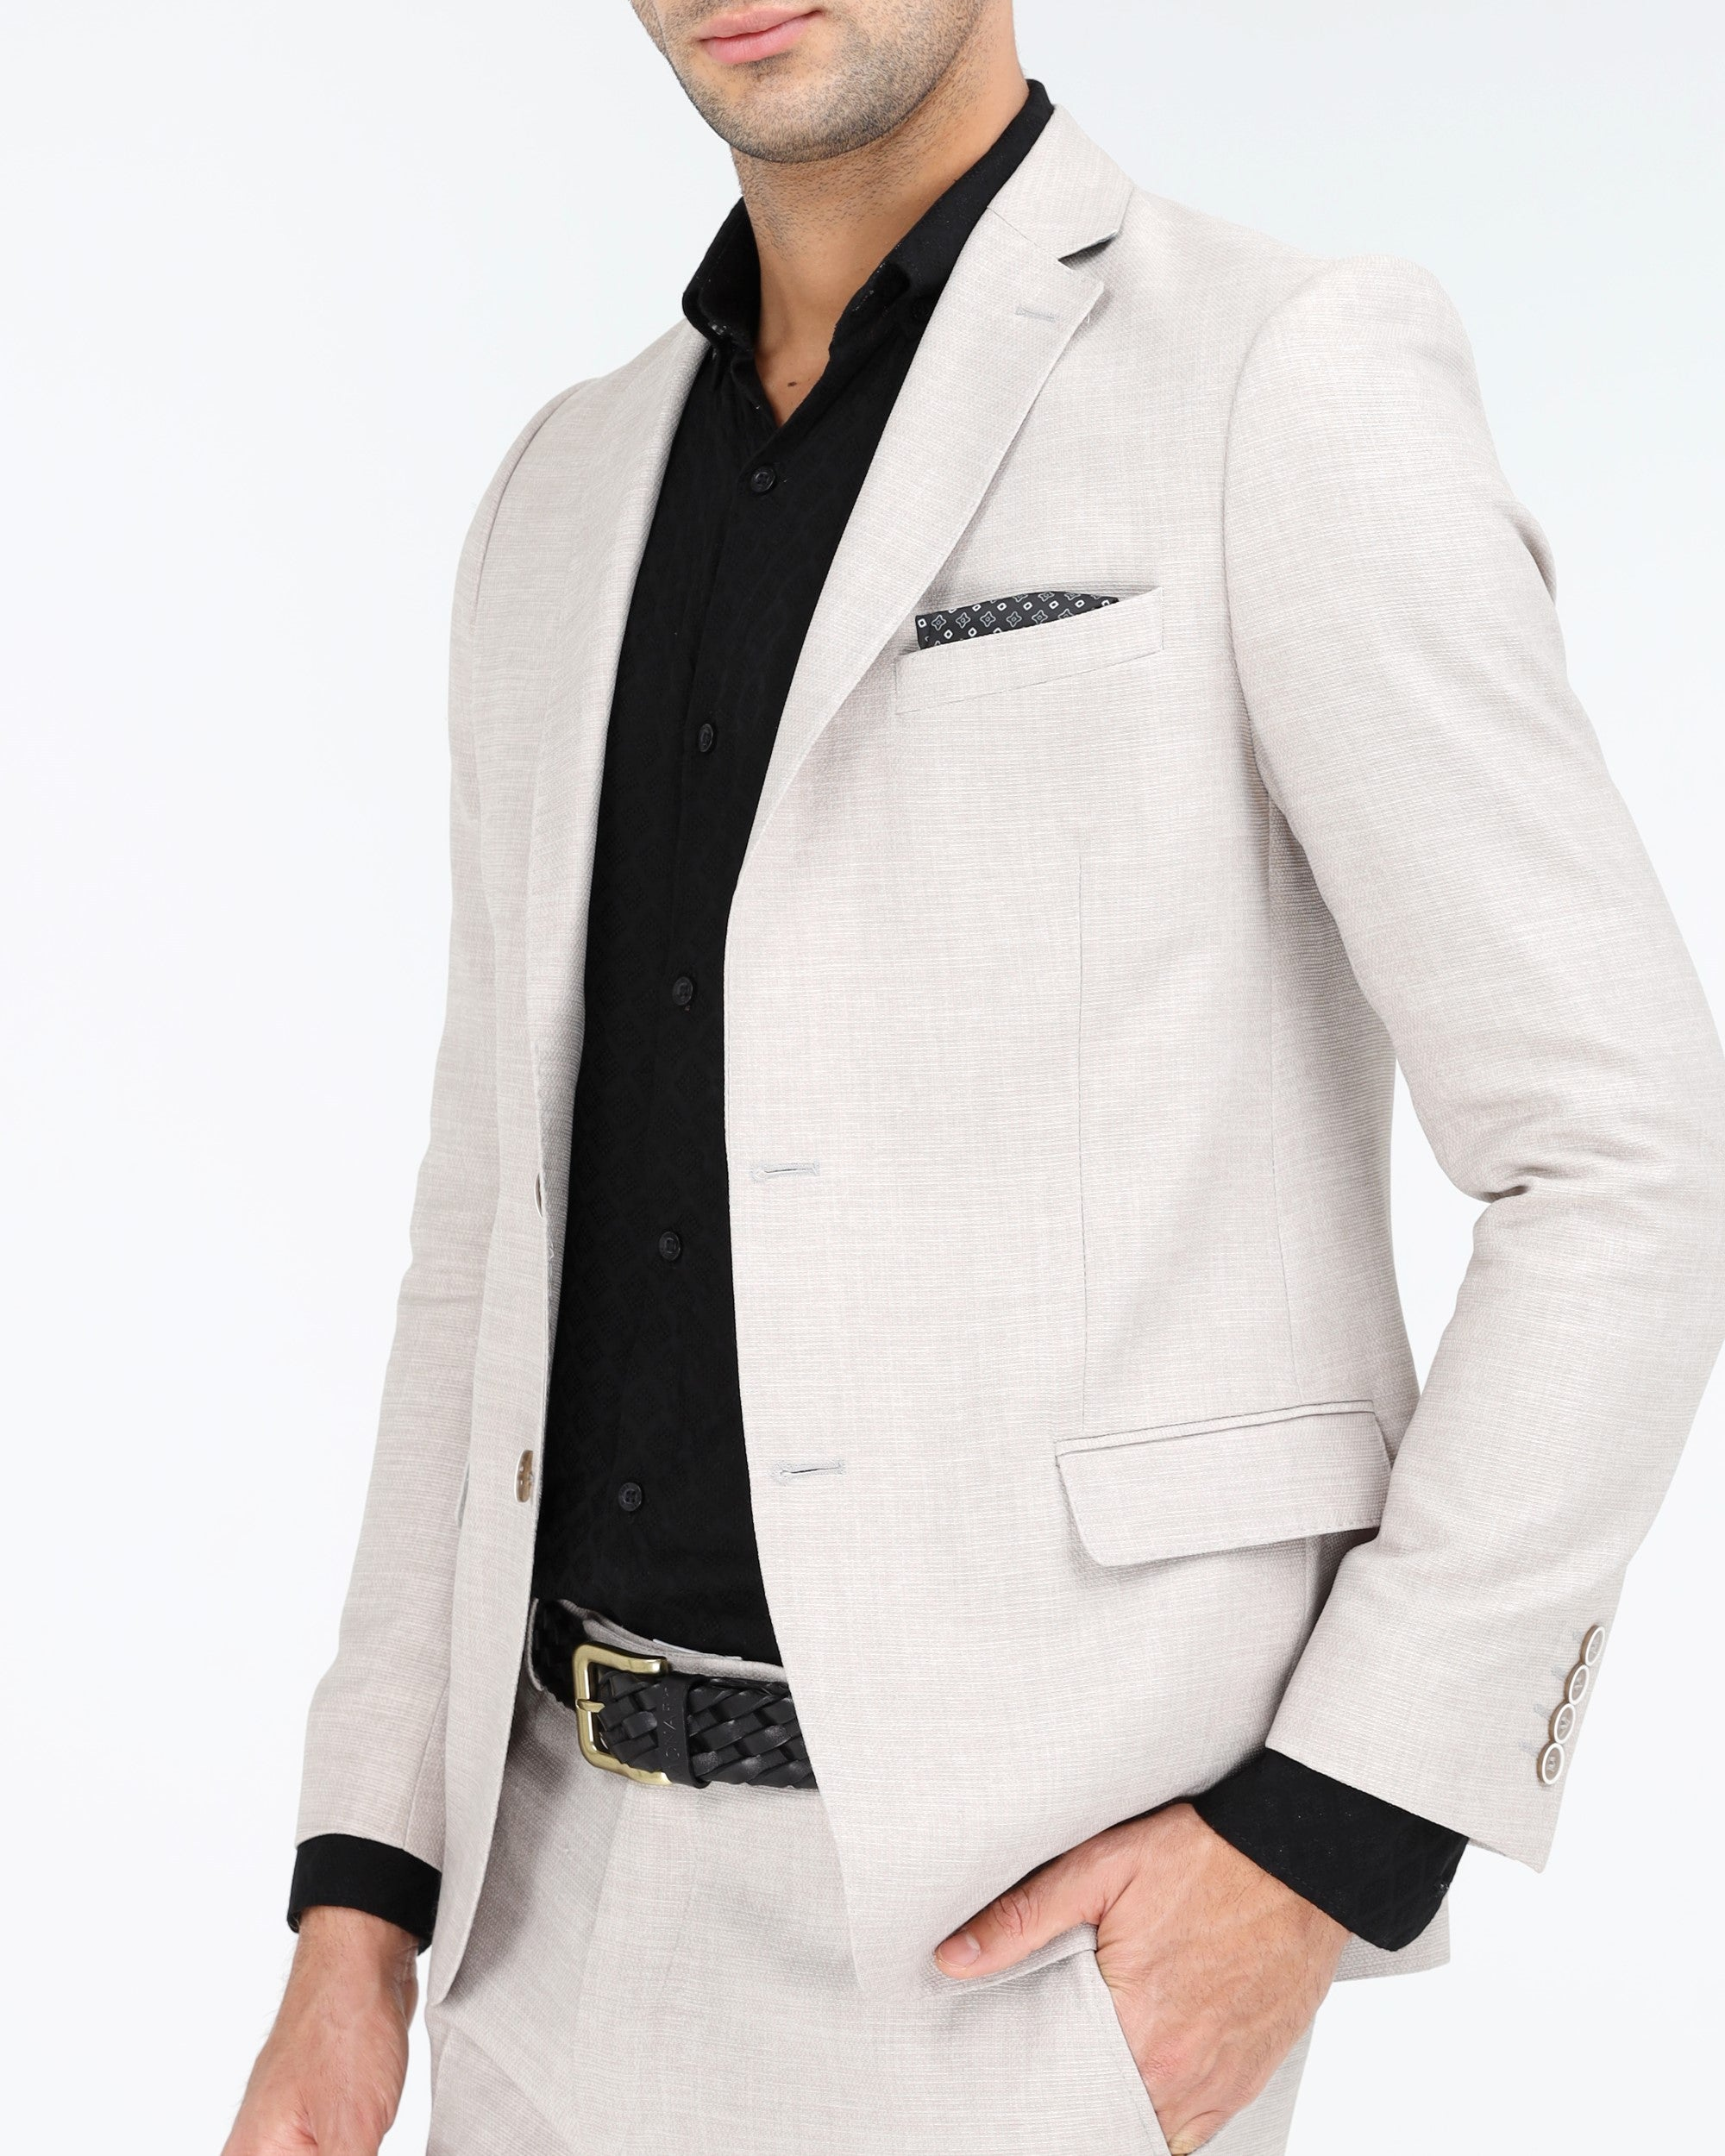 MADE IN TURKEY - LINEN 2-PCS SLIM FIT SUIT